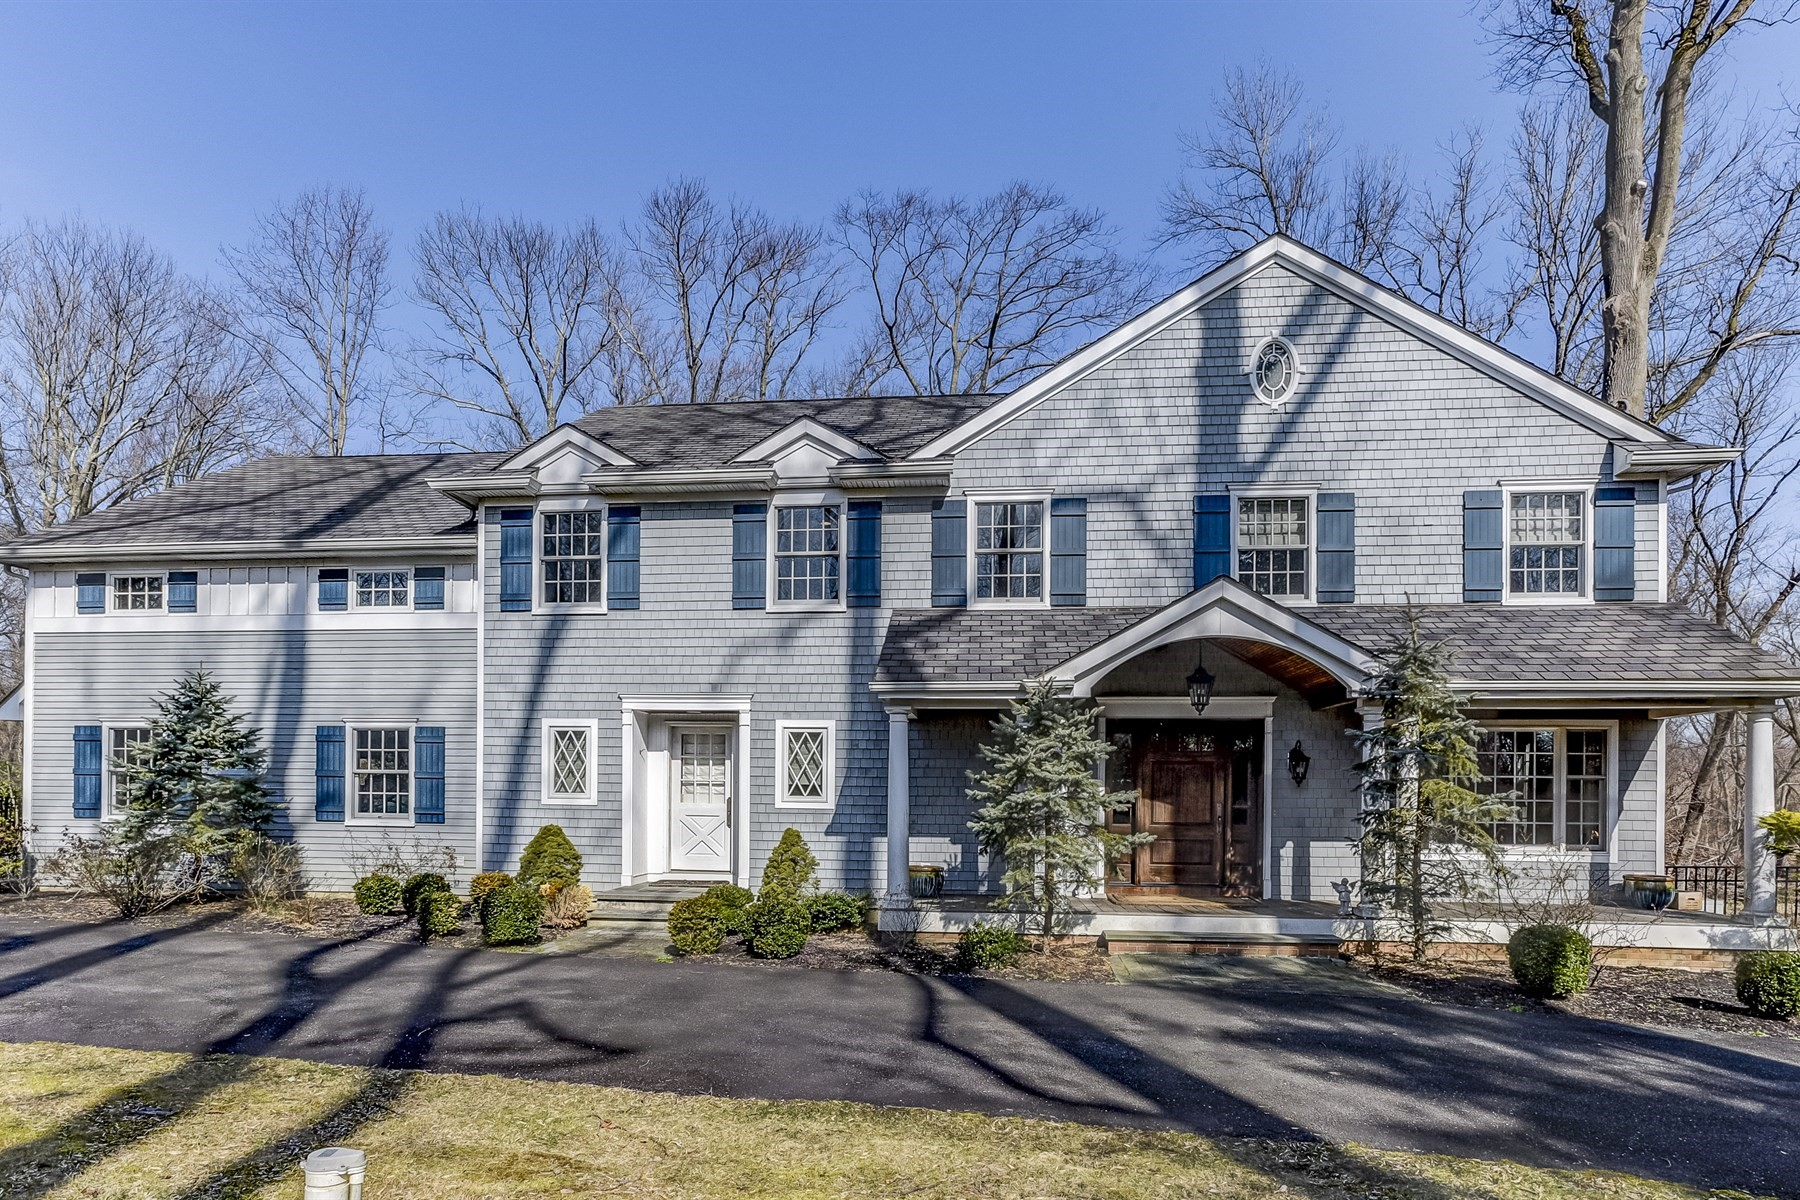 Single Family Home for Sale at Custom Built Home 92 Tulip Lane Colts Neck, New Jersey 07722 United States